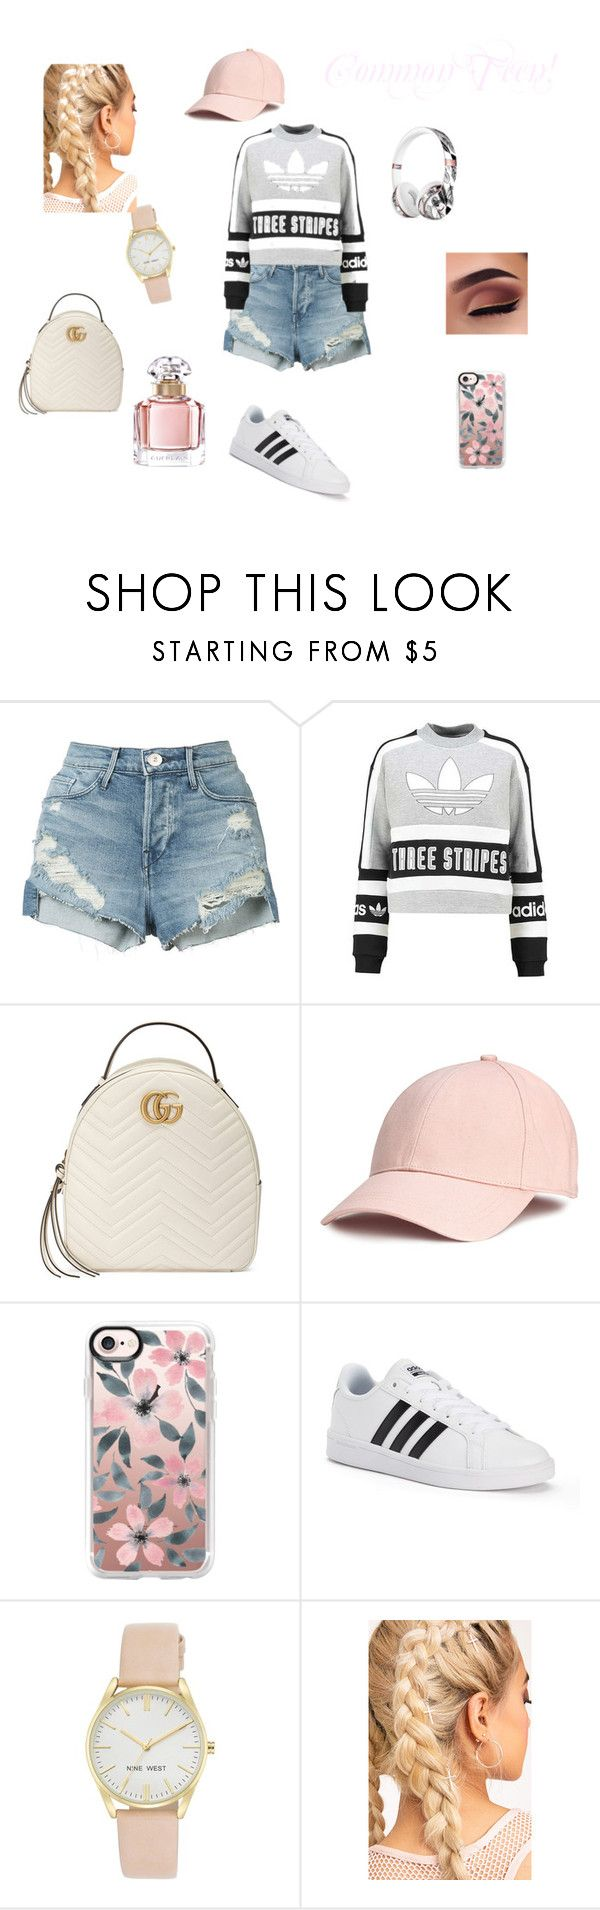 """Common Teen"" by janellwood on Polyvore featuring 3x1, adidas Originals, Gucci, Casetify, Beats by Dr. Dre, adidas, Nine West and Guerlain"